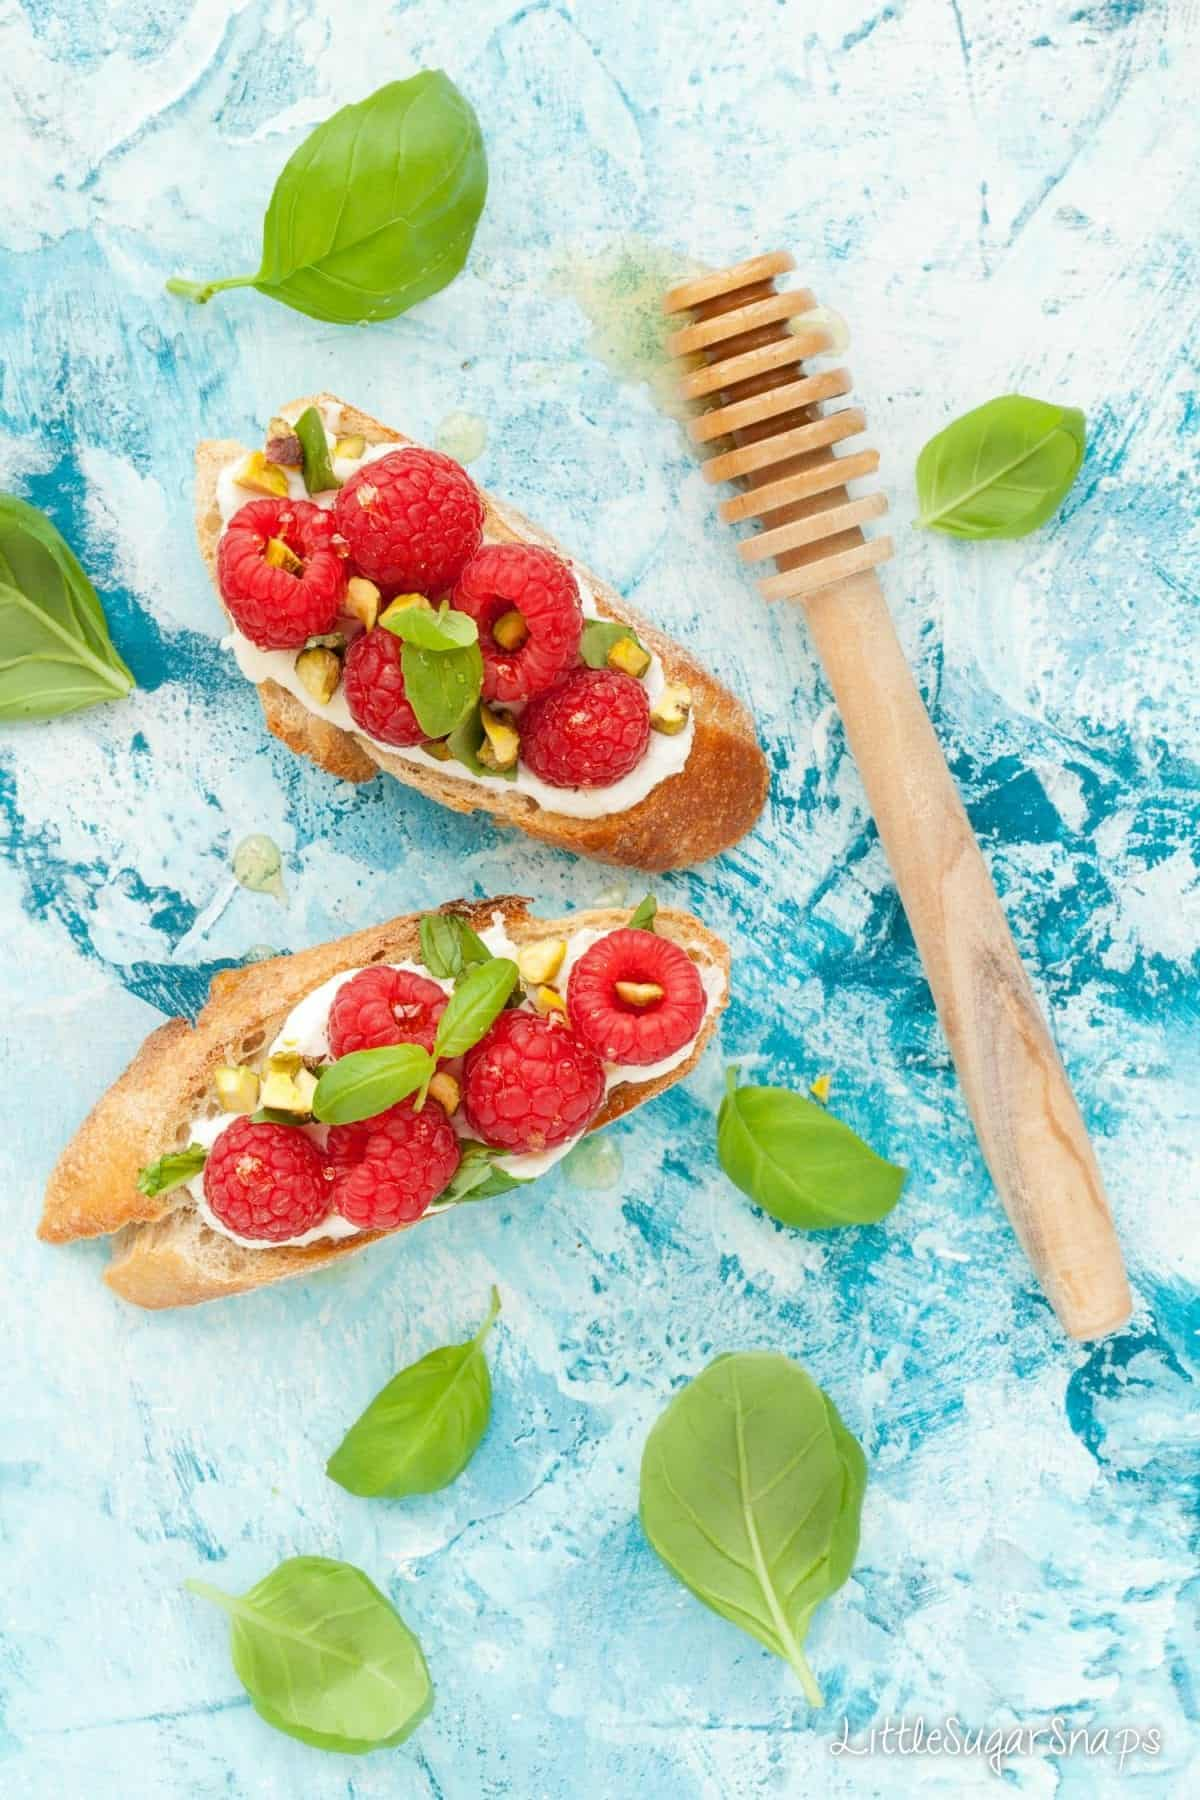 Overhead of fruit breakfast bruschetta: toasted baguette topped with soft cheese, raspberries, pistachio and basil